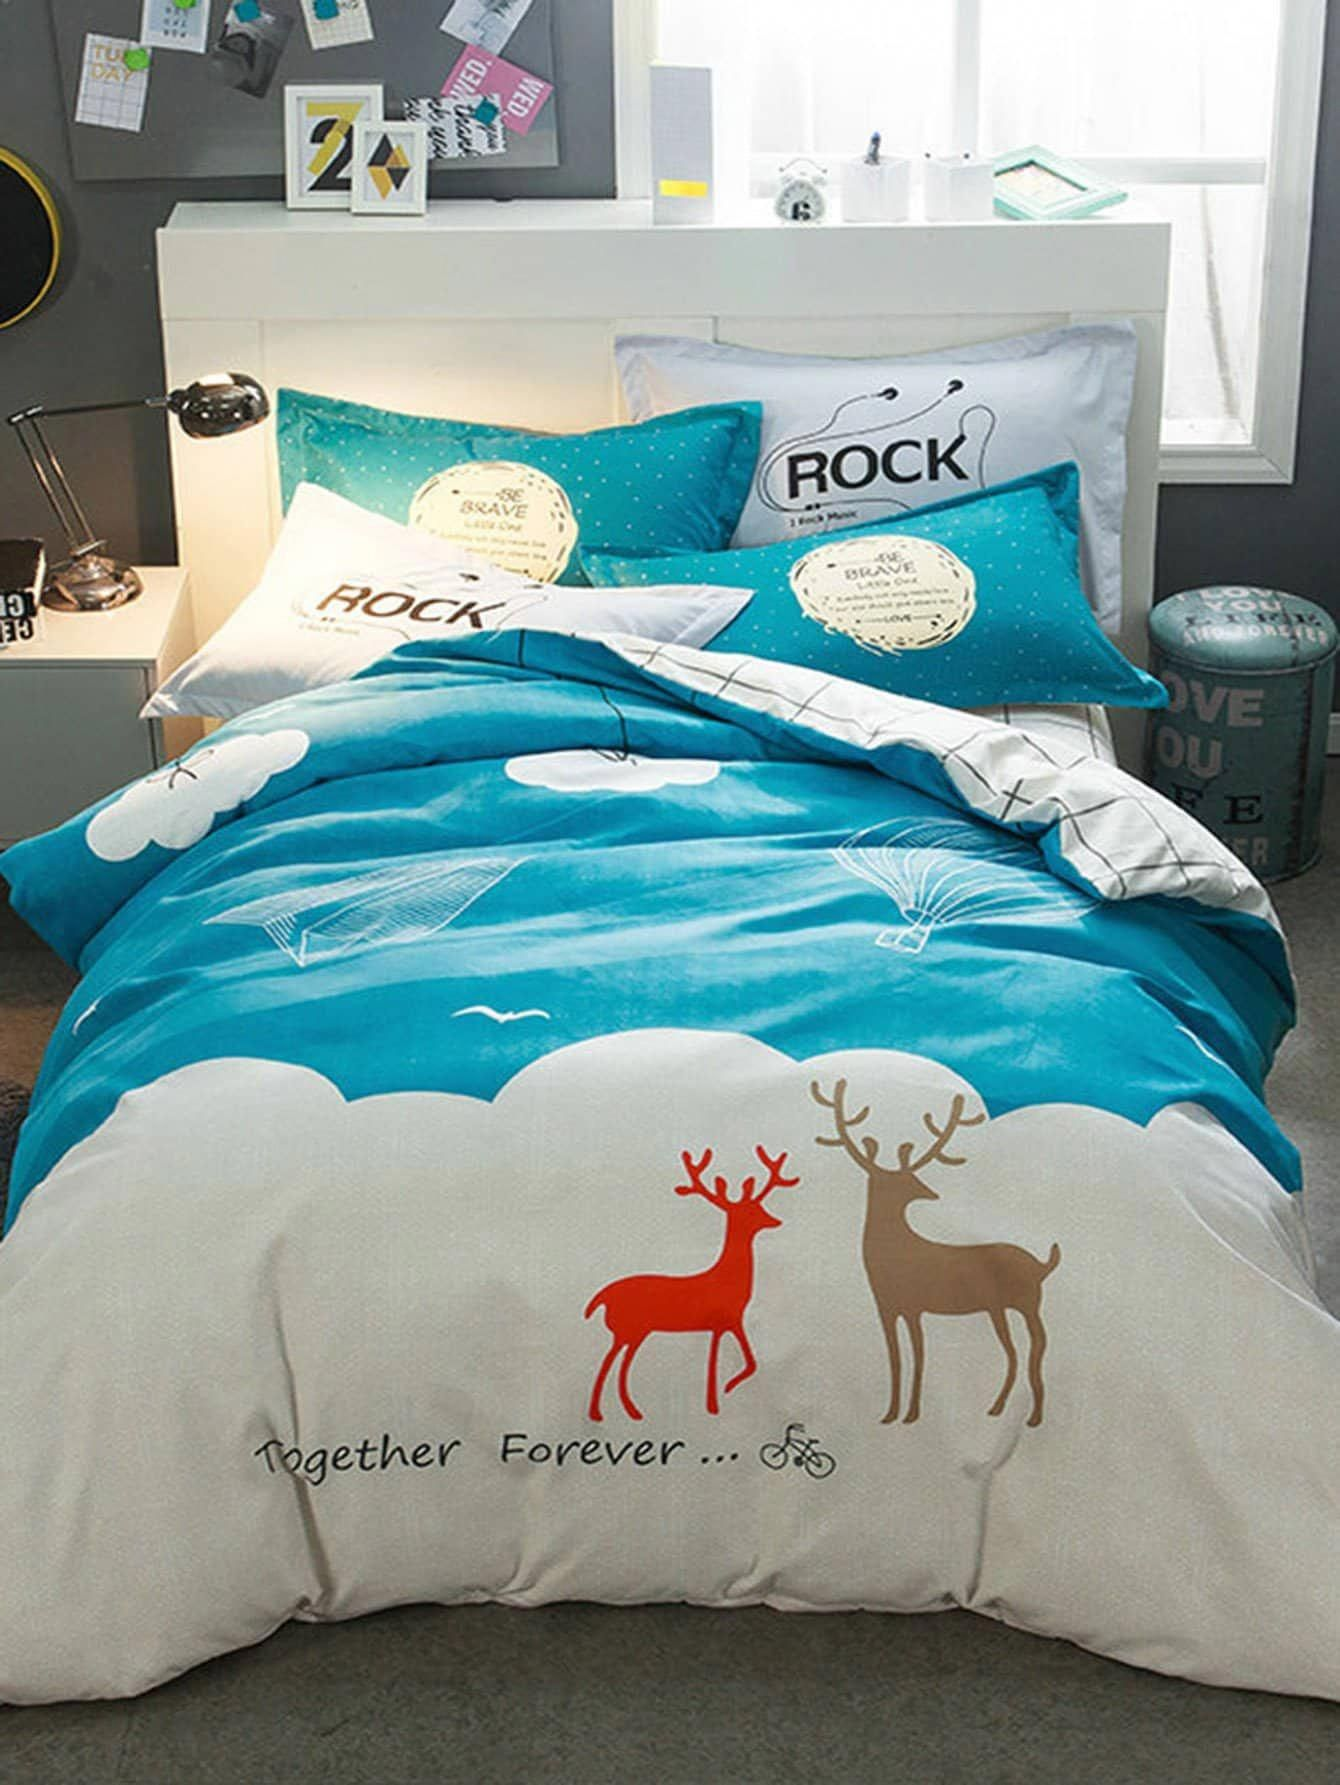 Bed sheets queen size walmart id9858134985